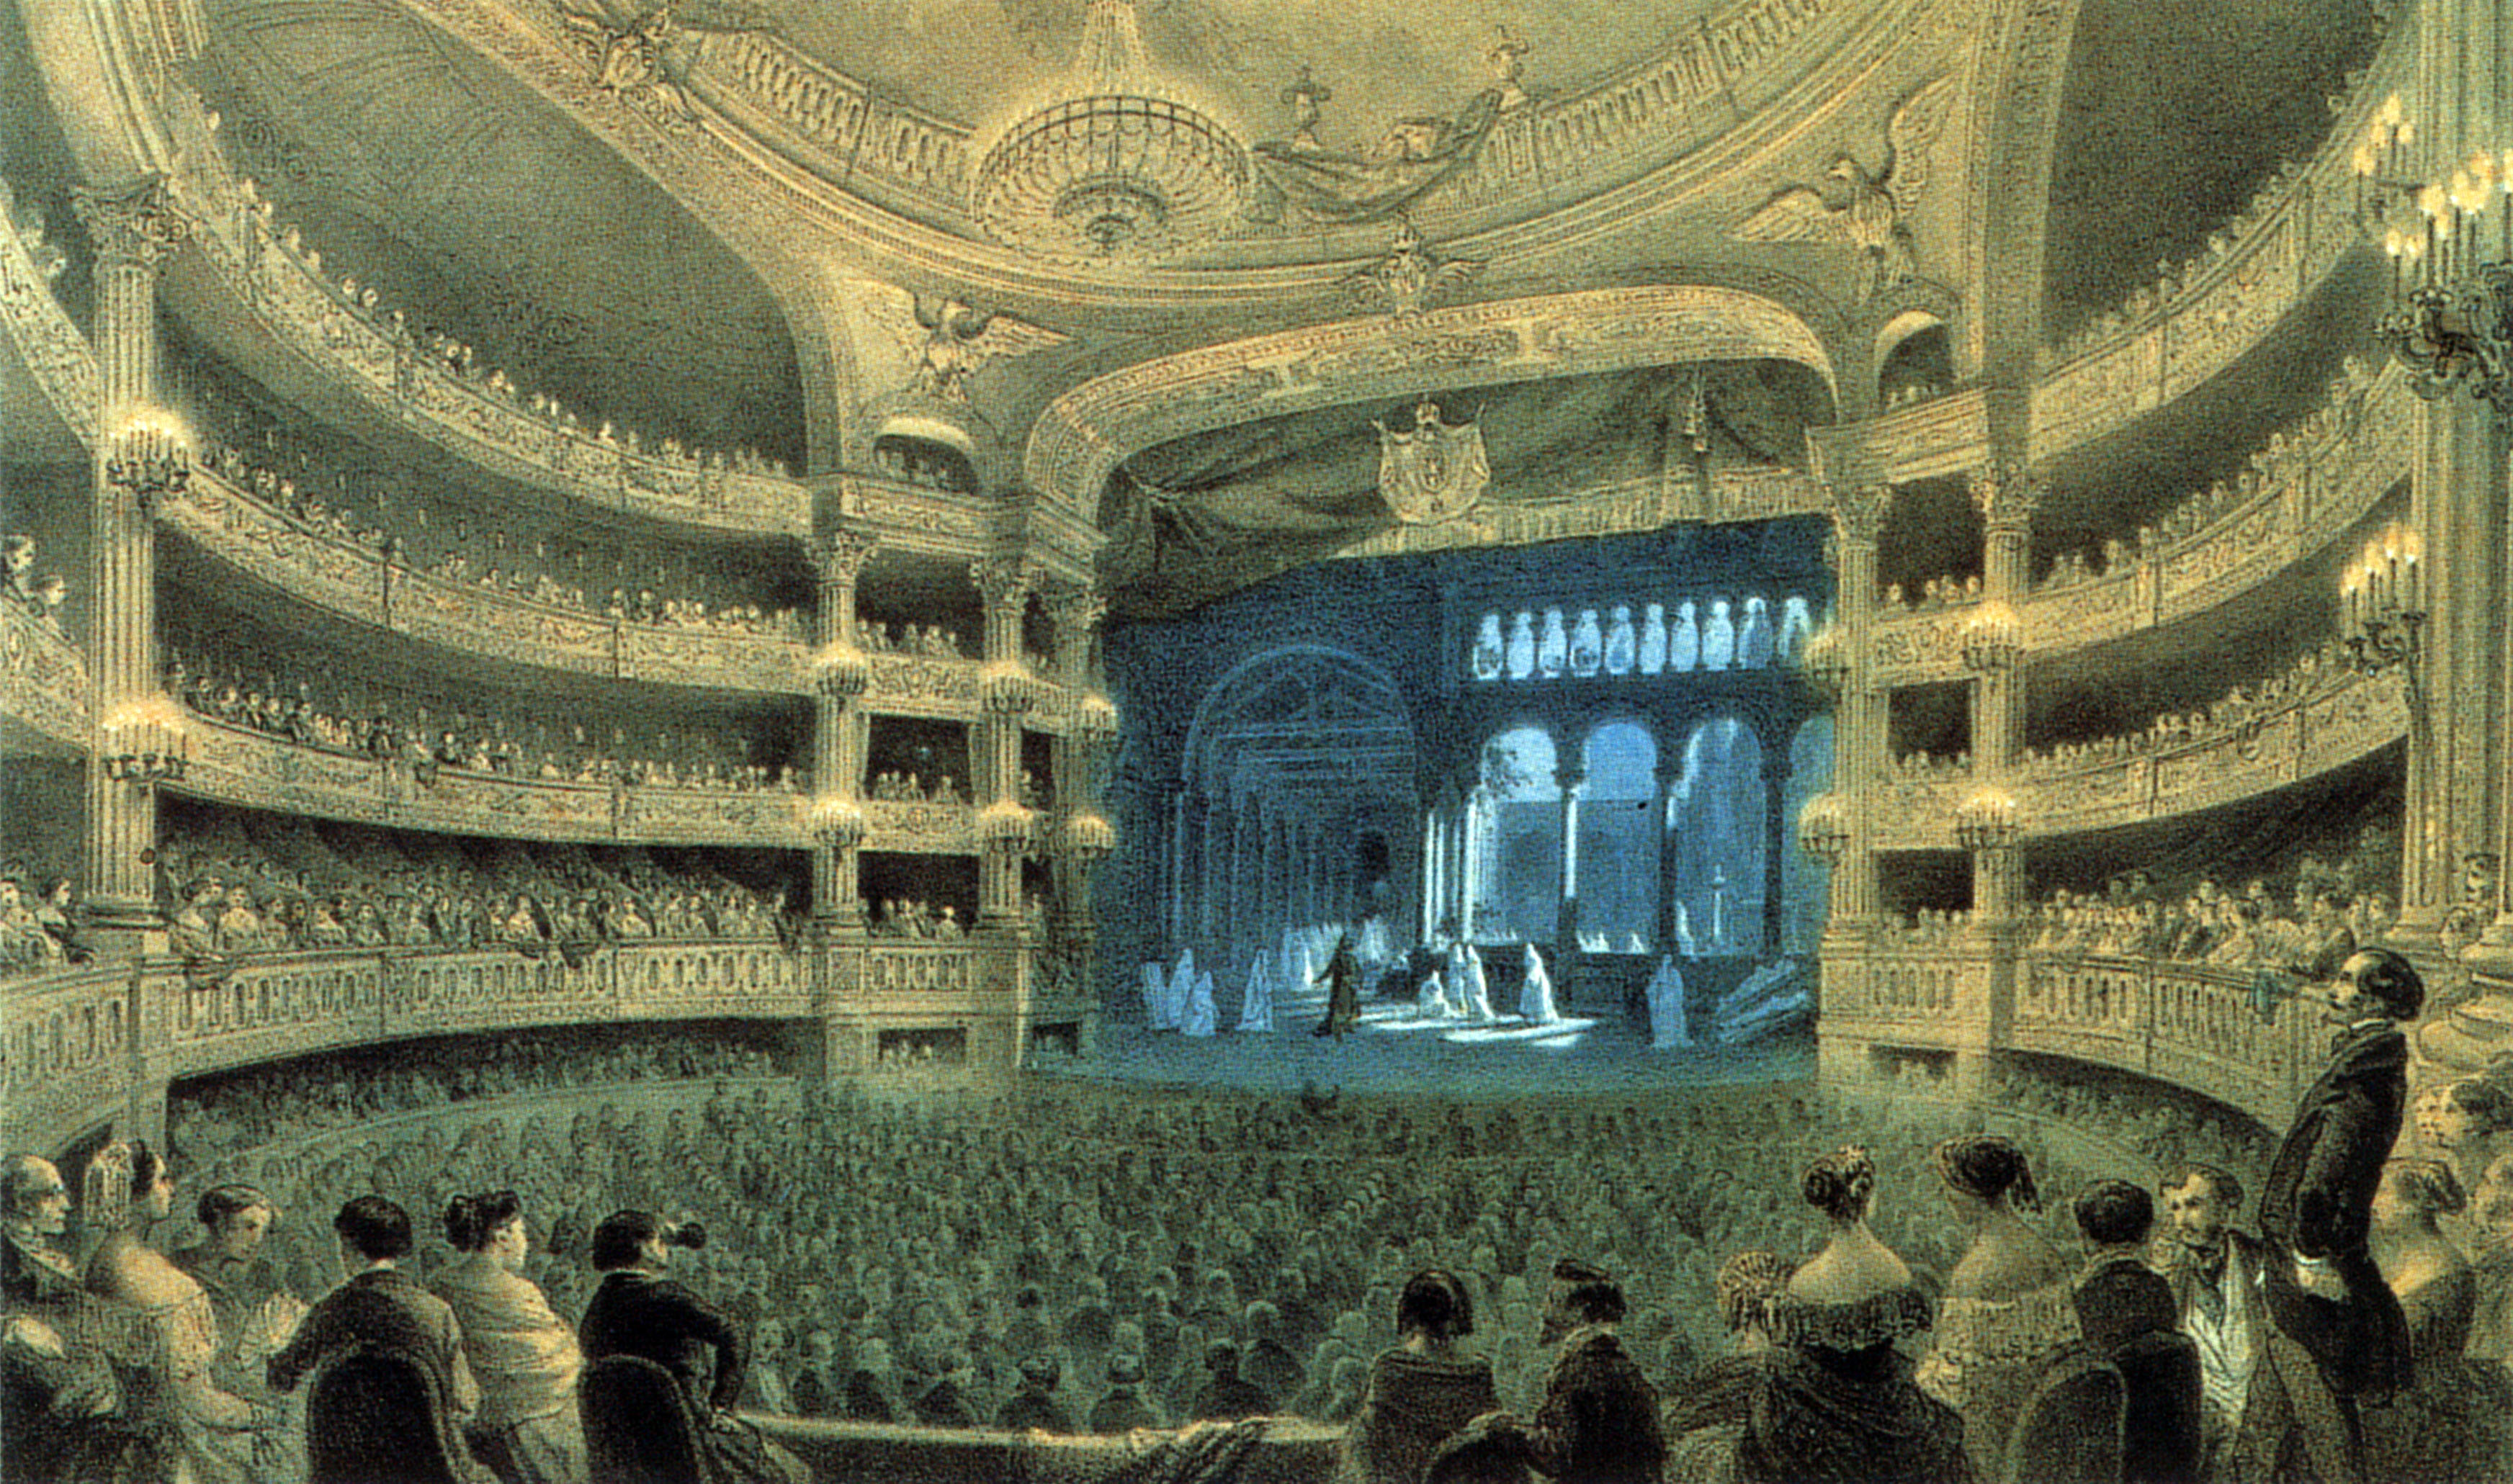 Salle Le Peletier during a performance of 'Robert le diable' - Fontaine 2004 p74.jpg